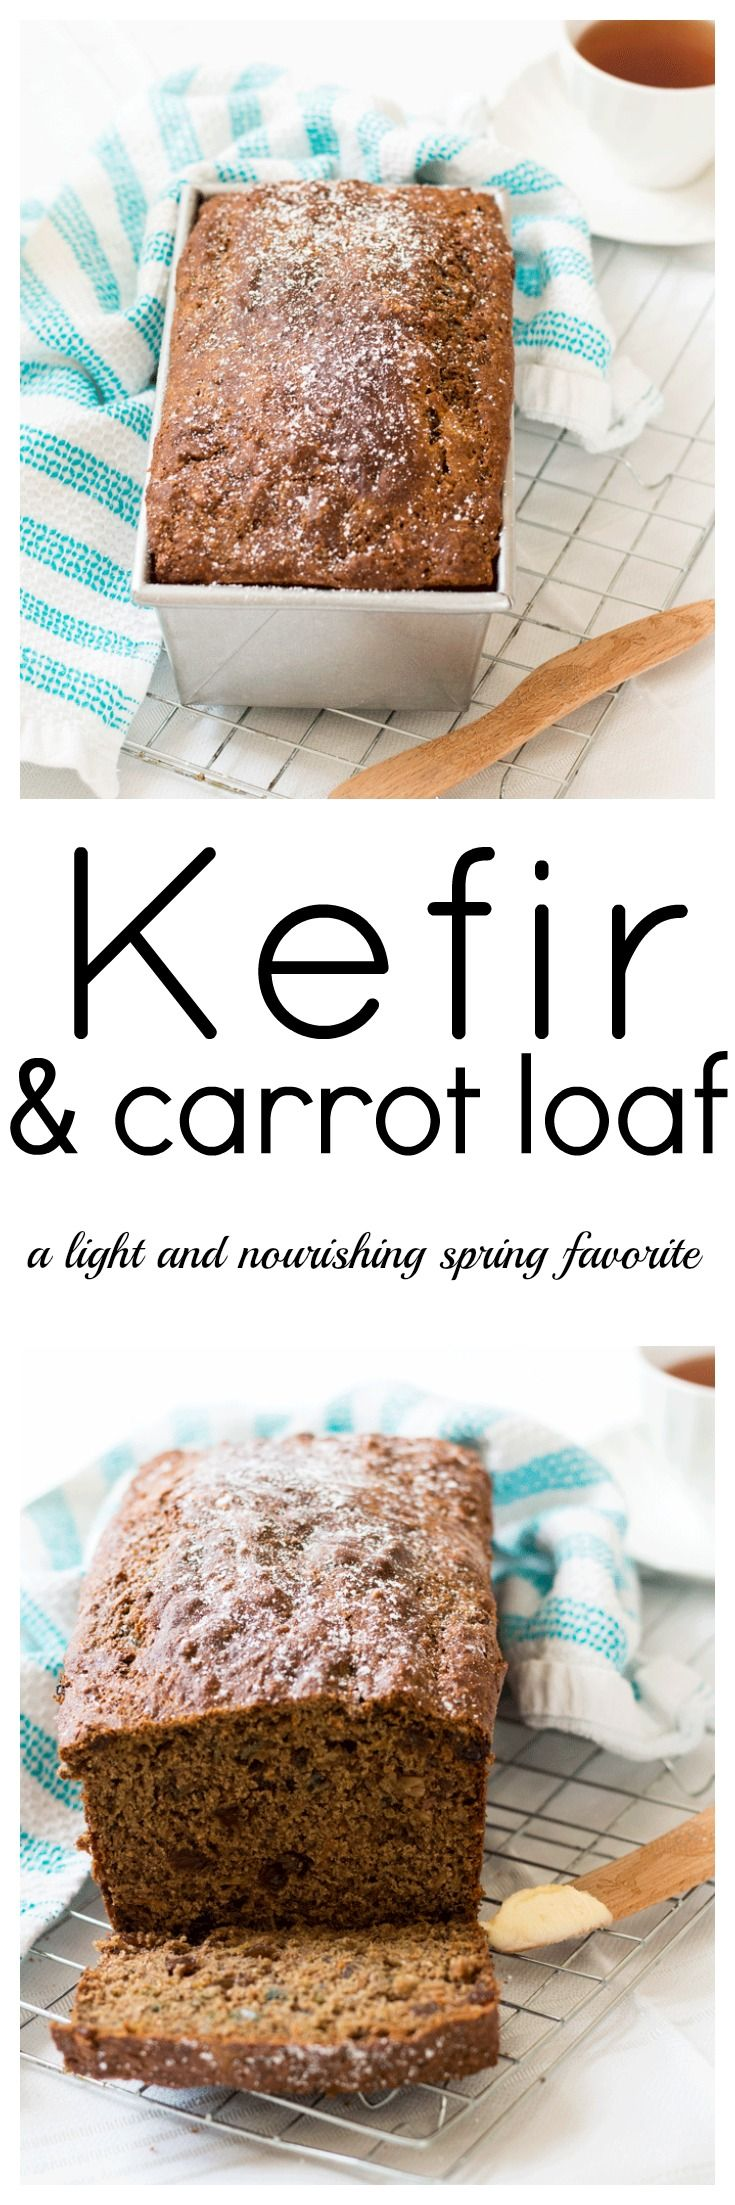 Imagine a Carrot Loaf that's not only delicious, but highly nourishing as well. Well, you can eat it too with this Kefir and Carrot Loaf full of goodness. via @wholefoodbellies